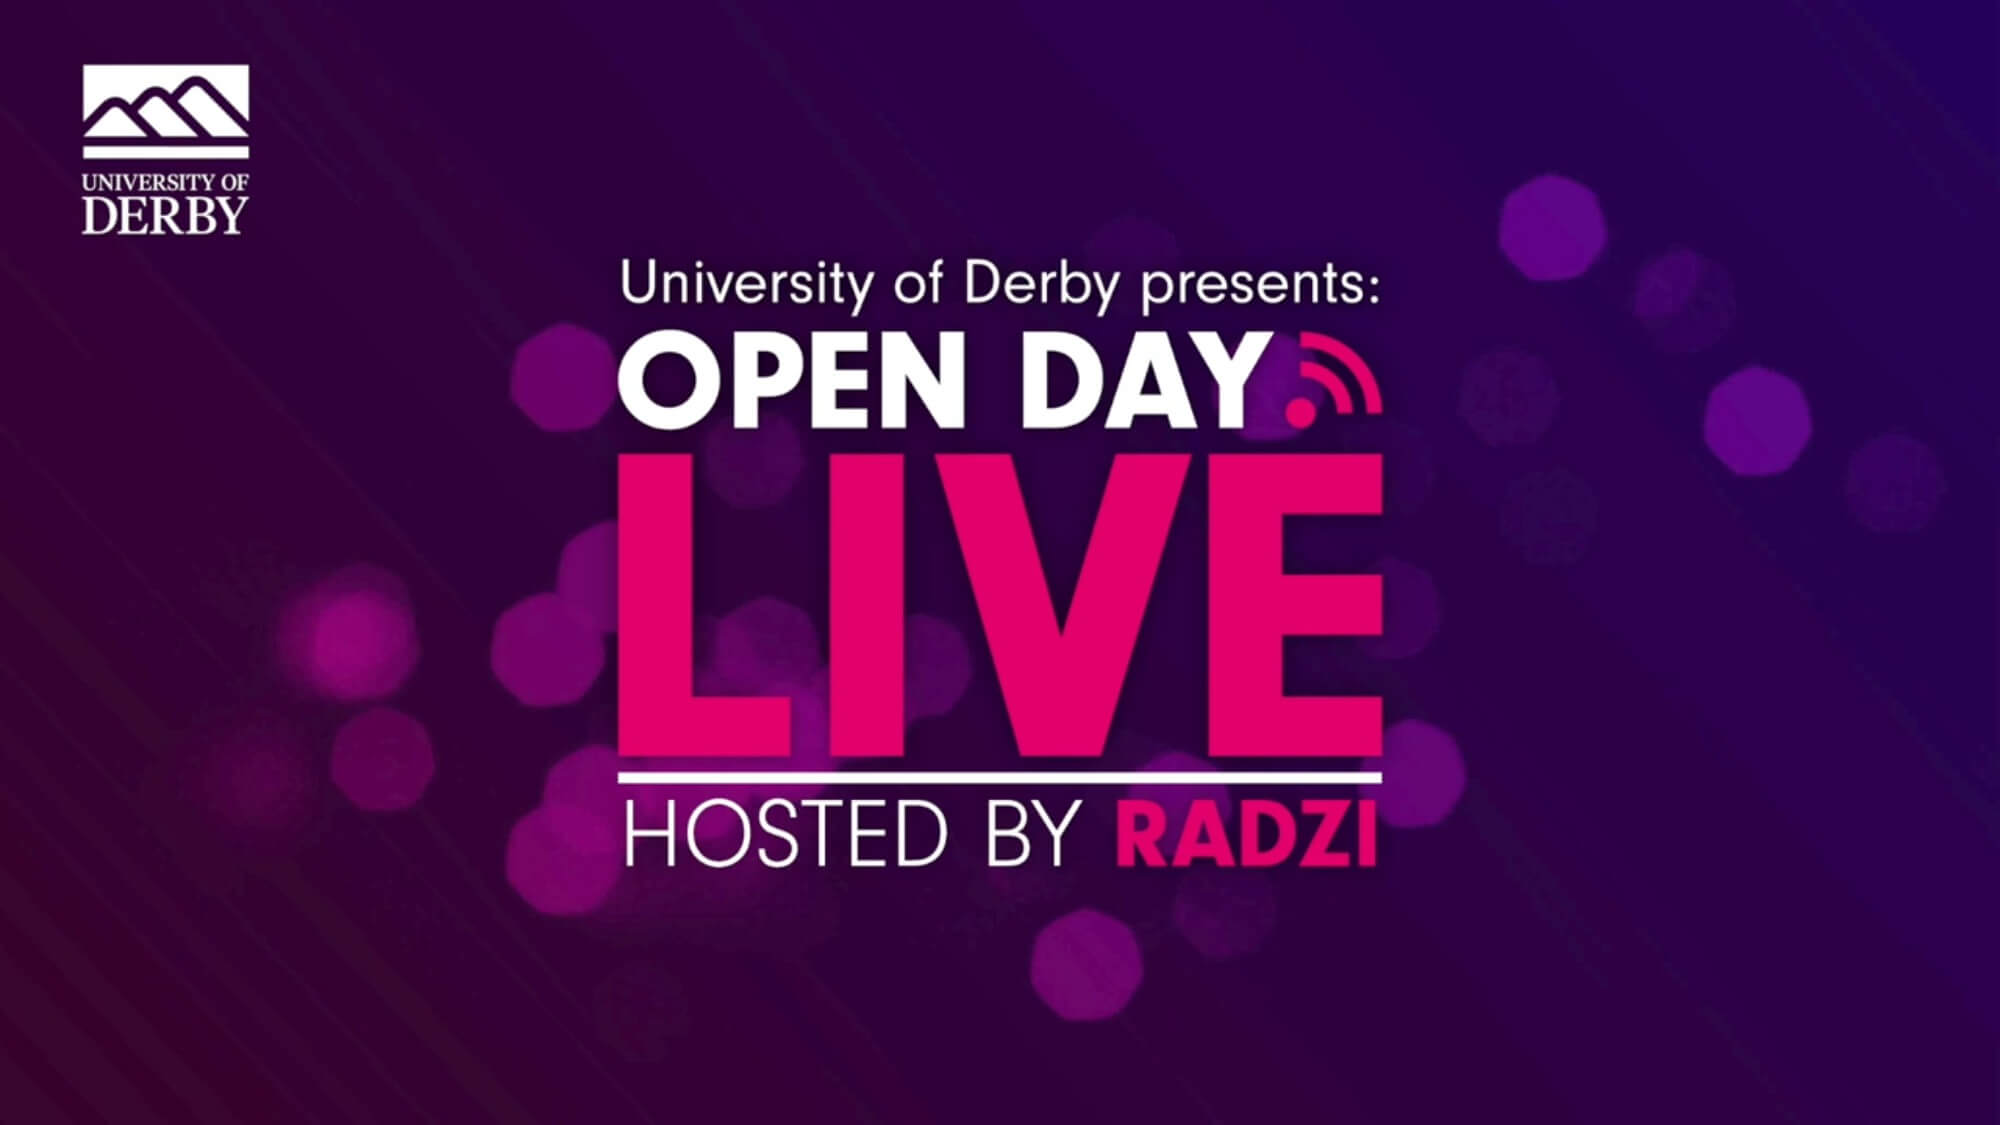 Highlights of Open Day Live